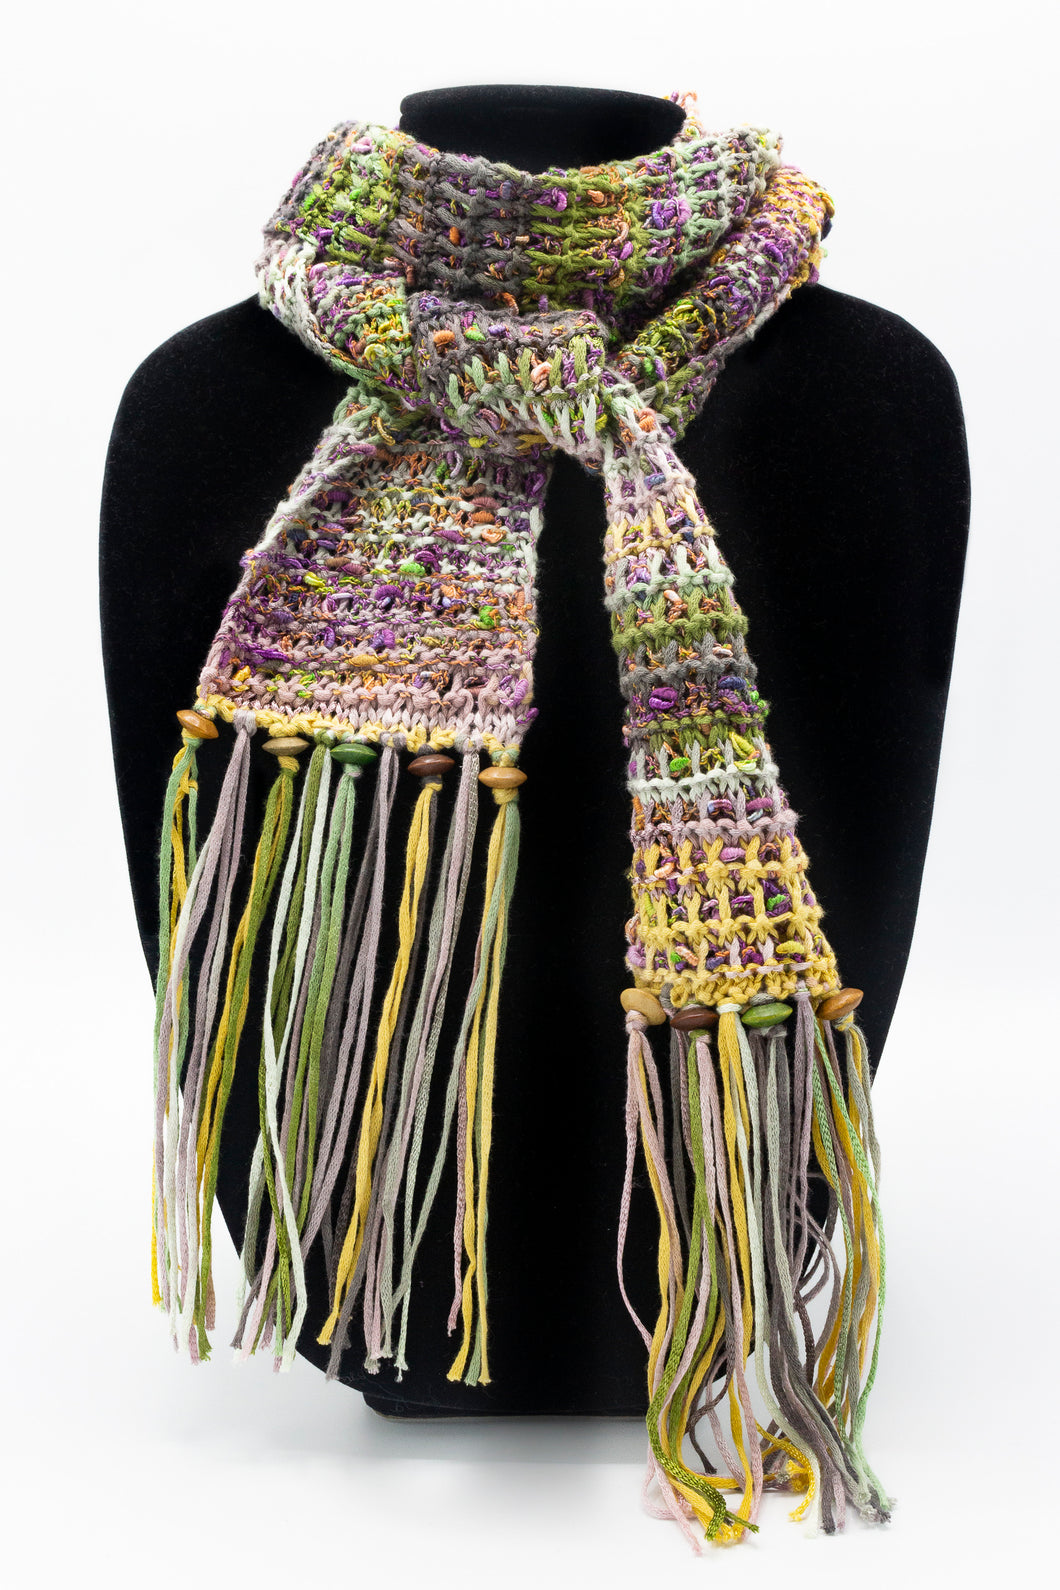 Fringed Scarf with Beads